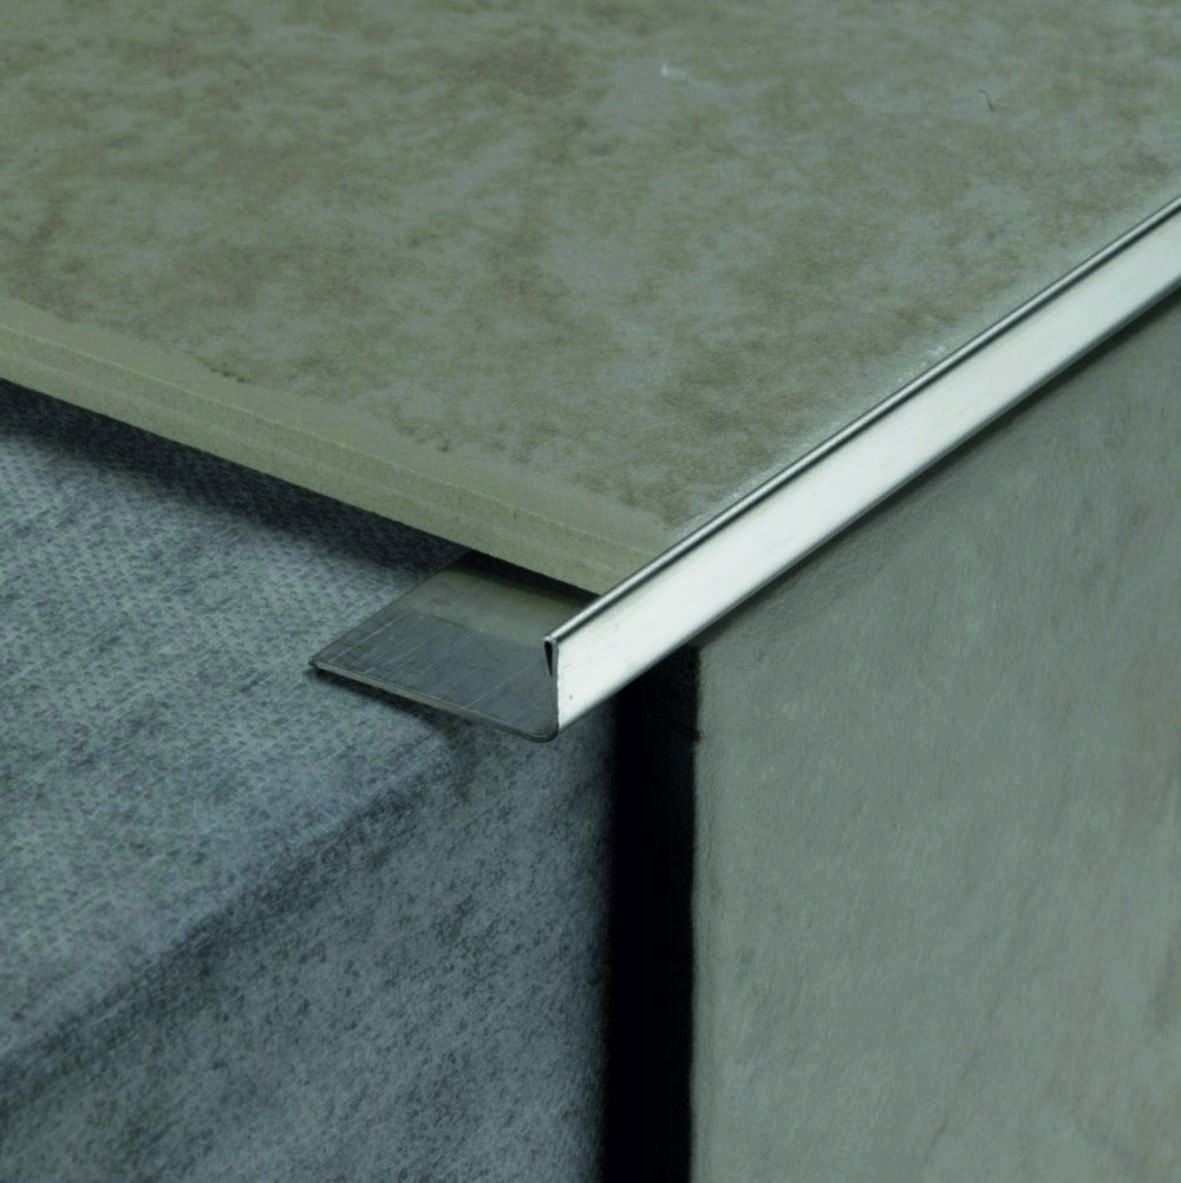 Профиль Juliano Tile Trim SL026-1S Silver (толщина металла 0,8мм) - Фото интерьеров №4